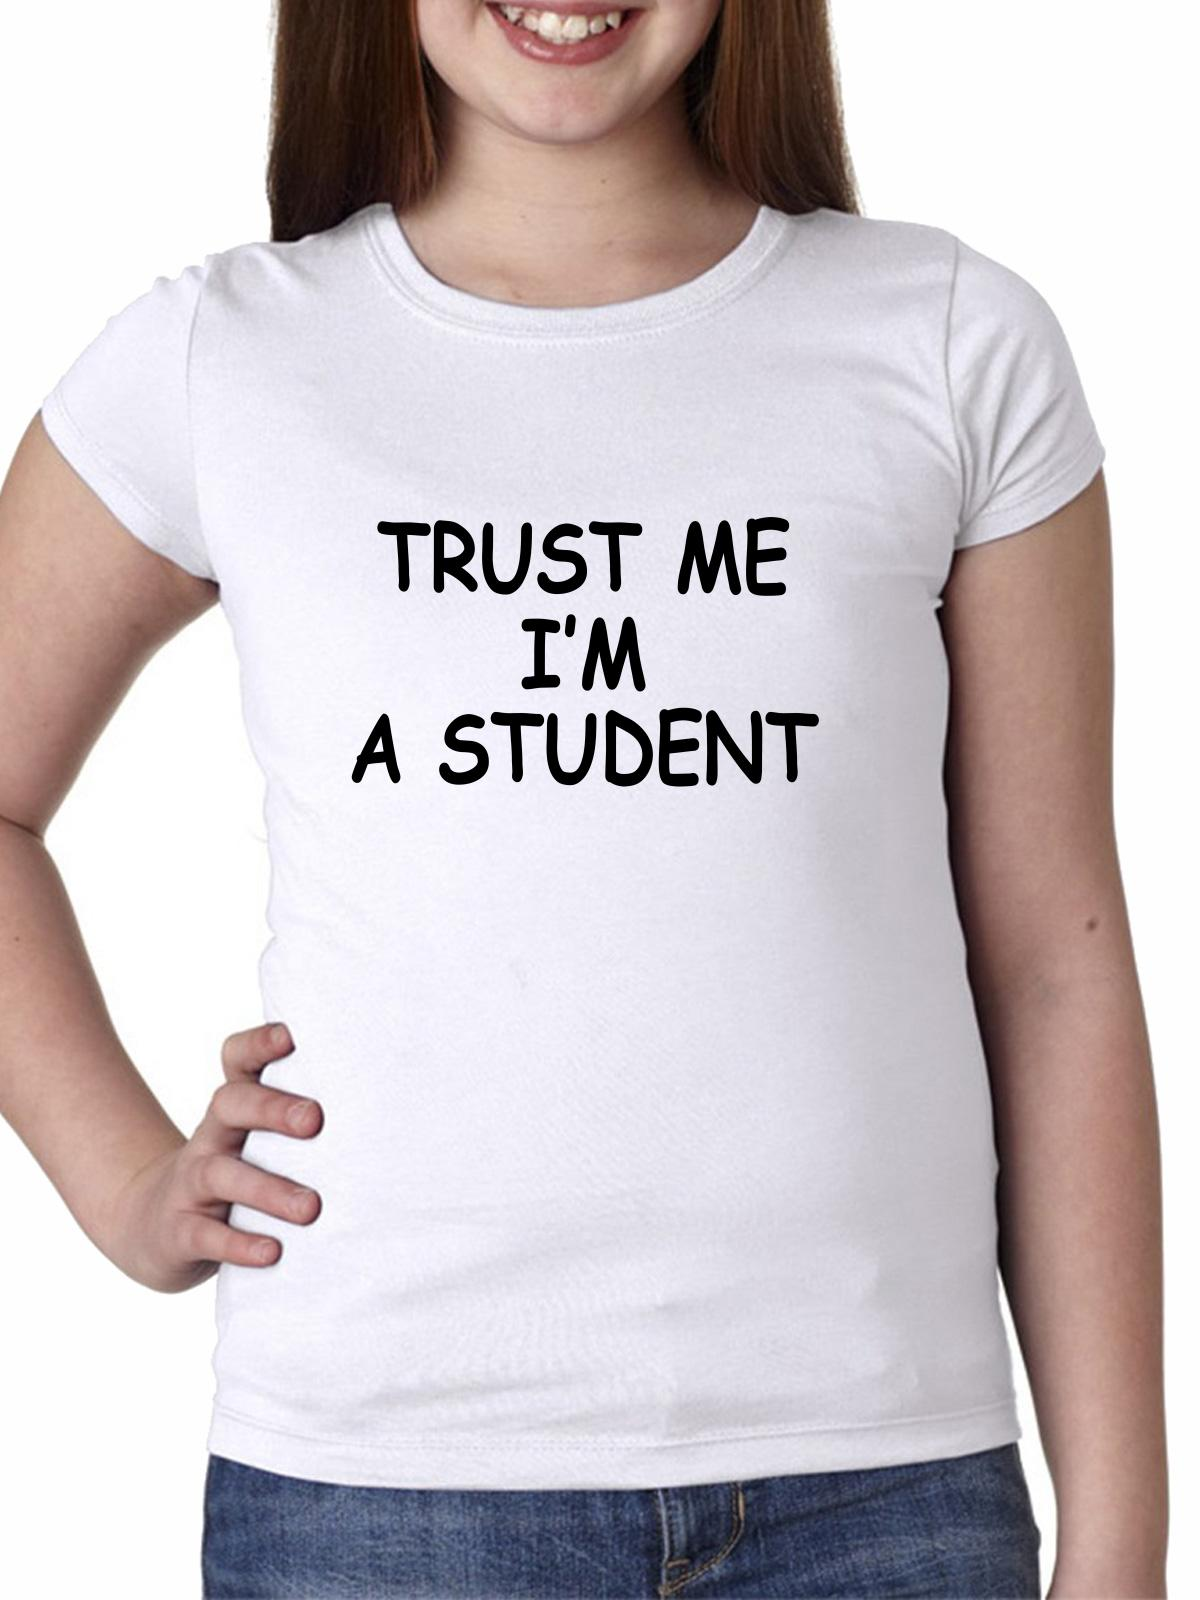 Trust Me - I'm A Student - Classic Large Print School Girl's Cotton Youth T-Shirt